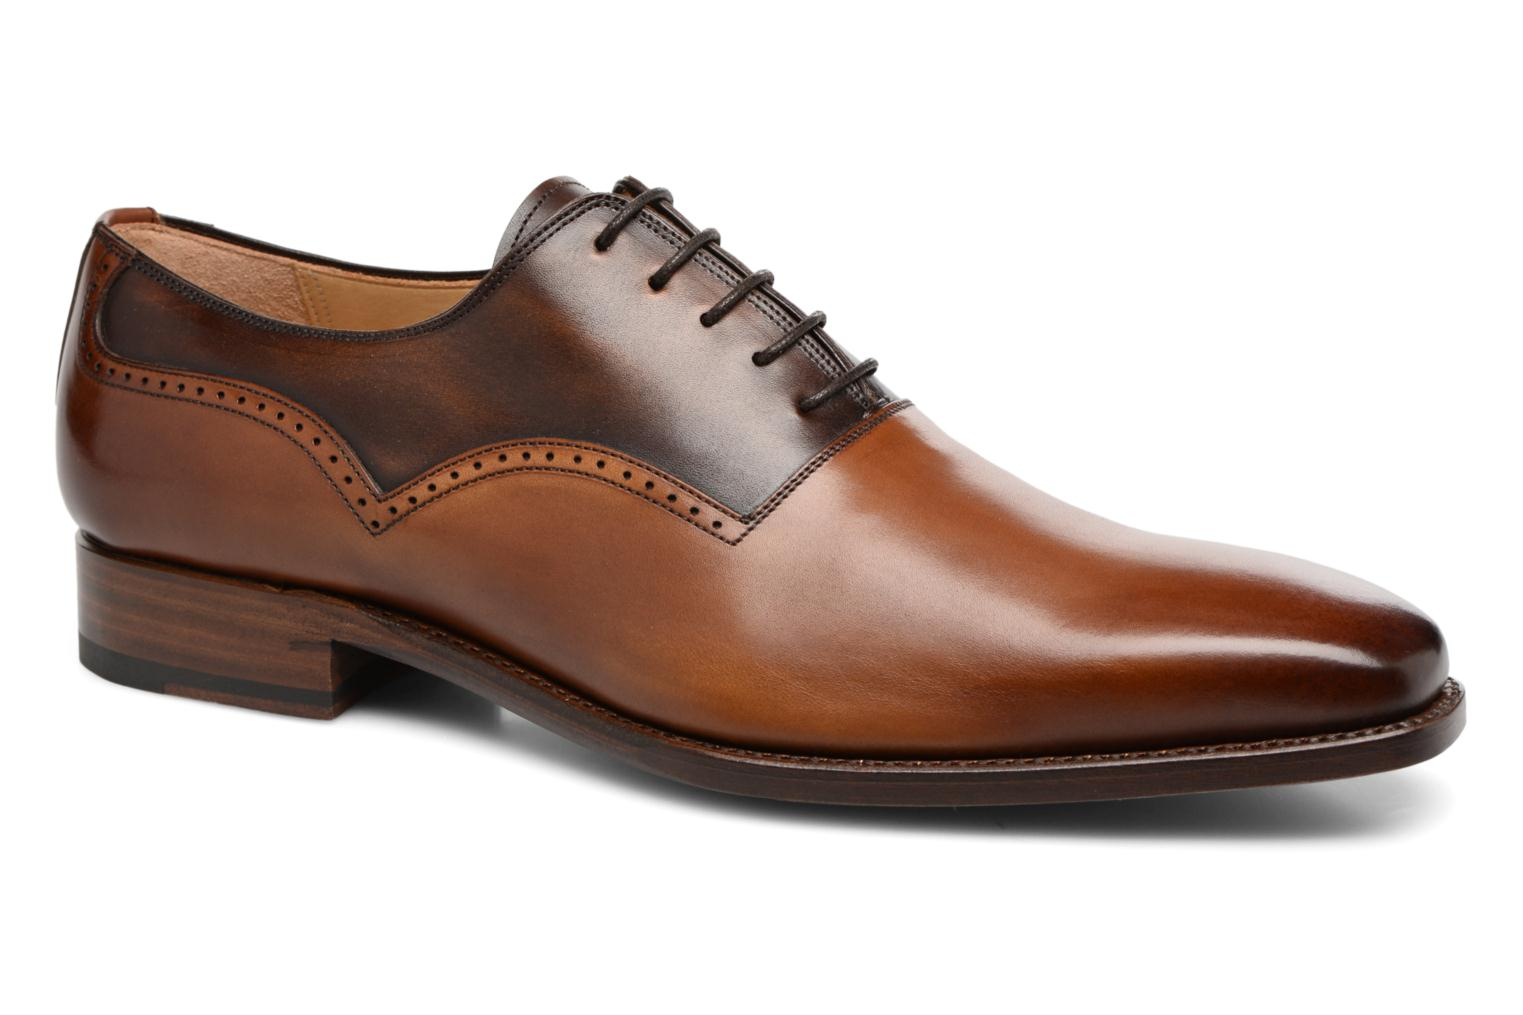 Marvin&Co Luxe Westminster - Cousu Goodyear (Marron) - Chaussures à lacets chez Sarenza (313010)